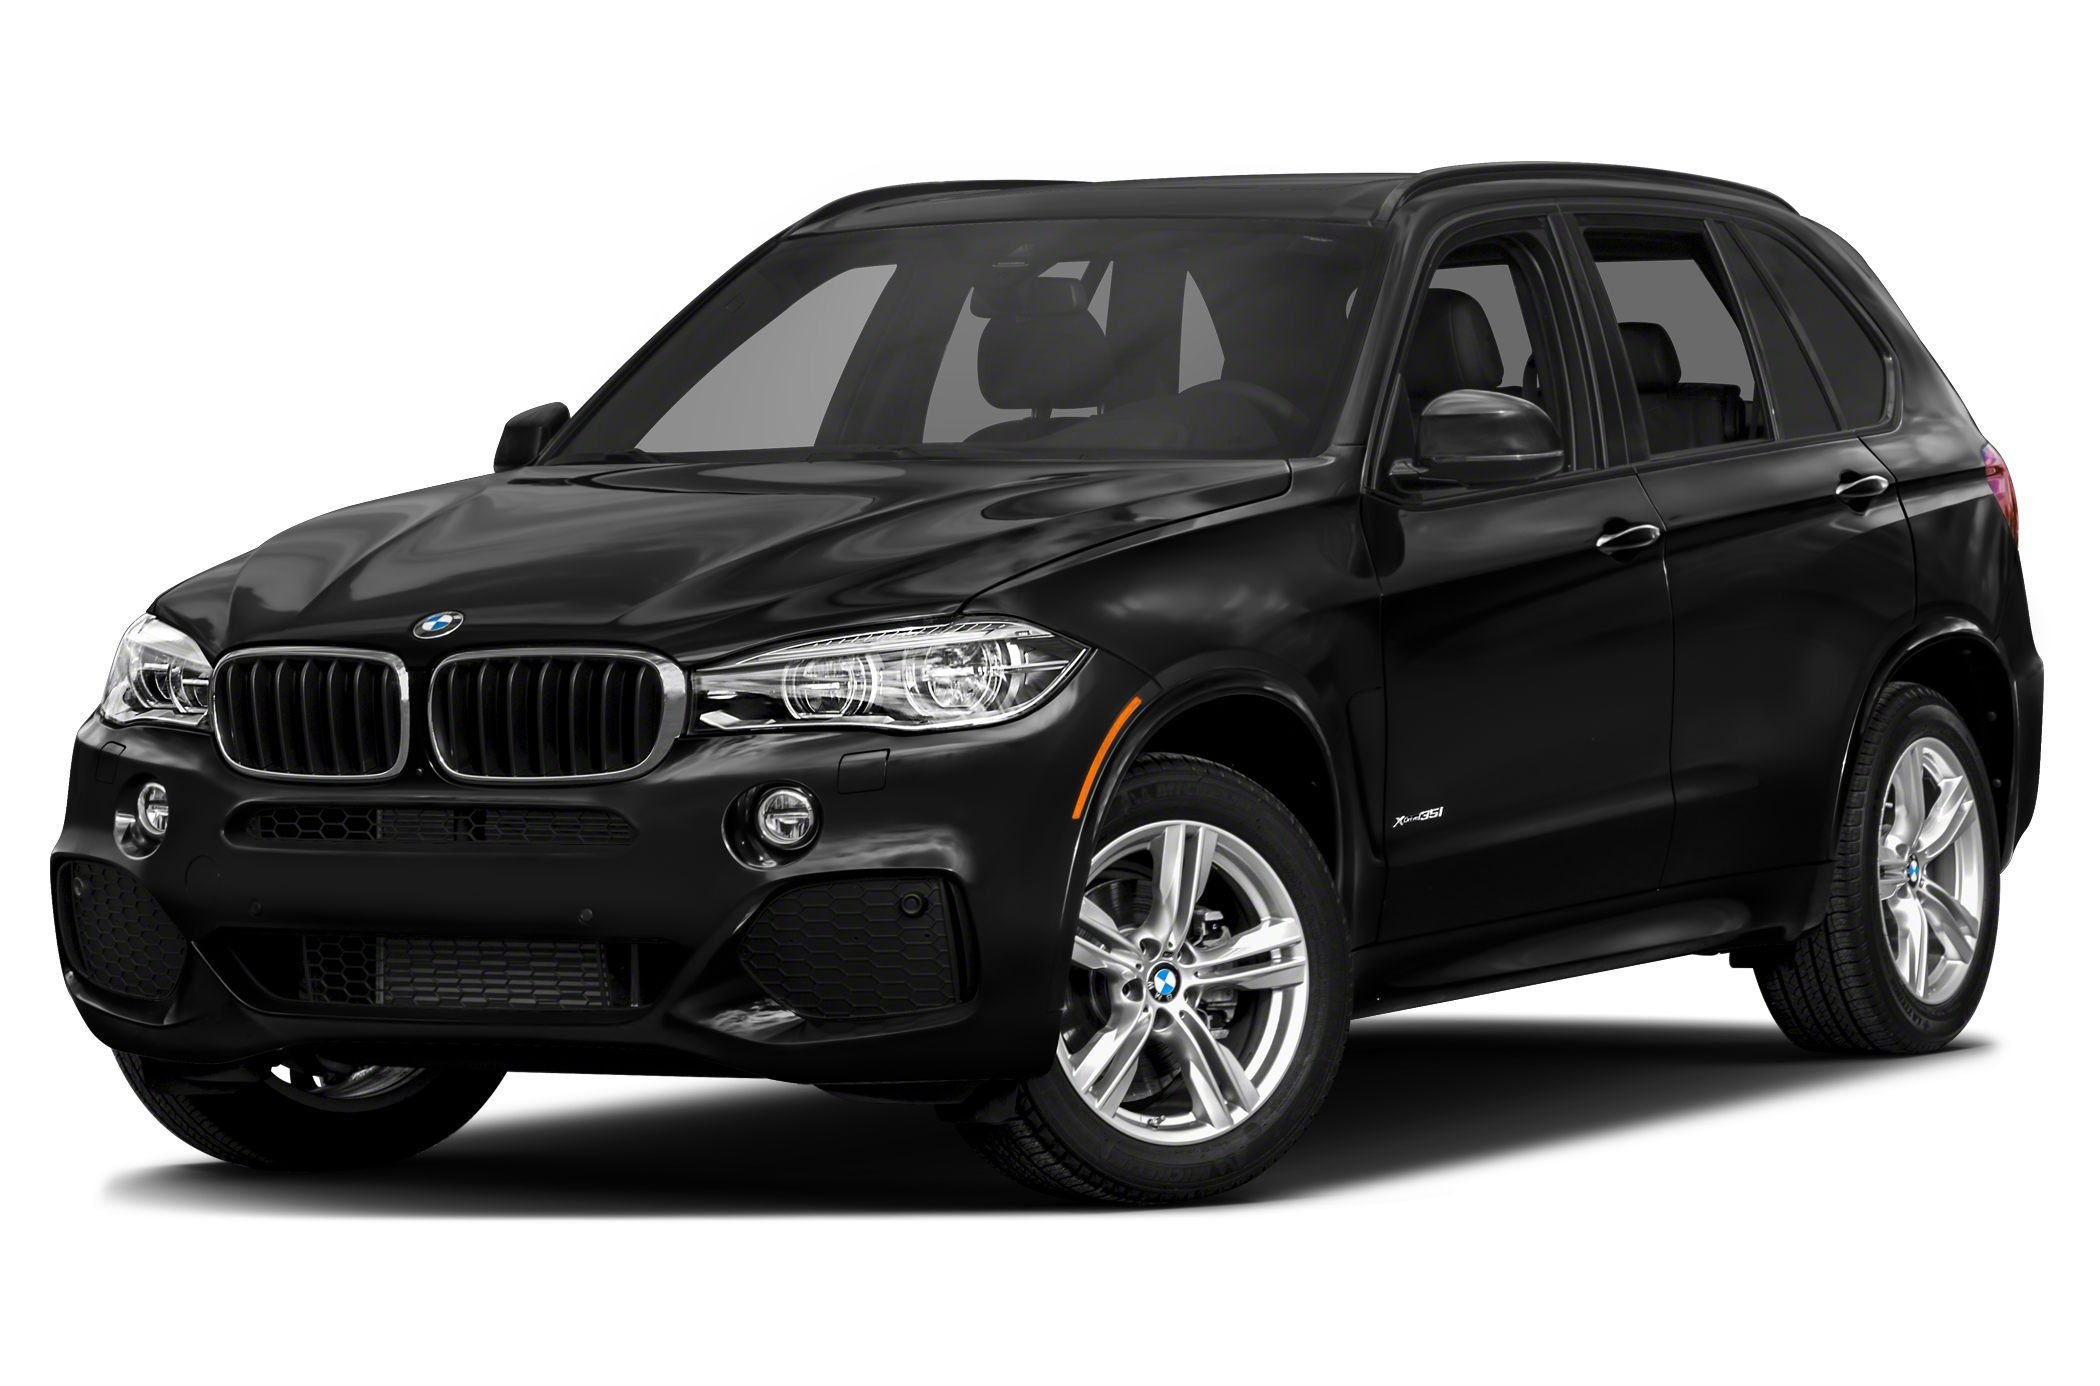 2015 BMW X5 XDrive35i SUV for sale in Louisville for $69,325 with 5 miles